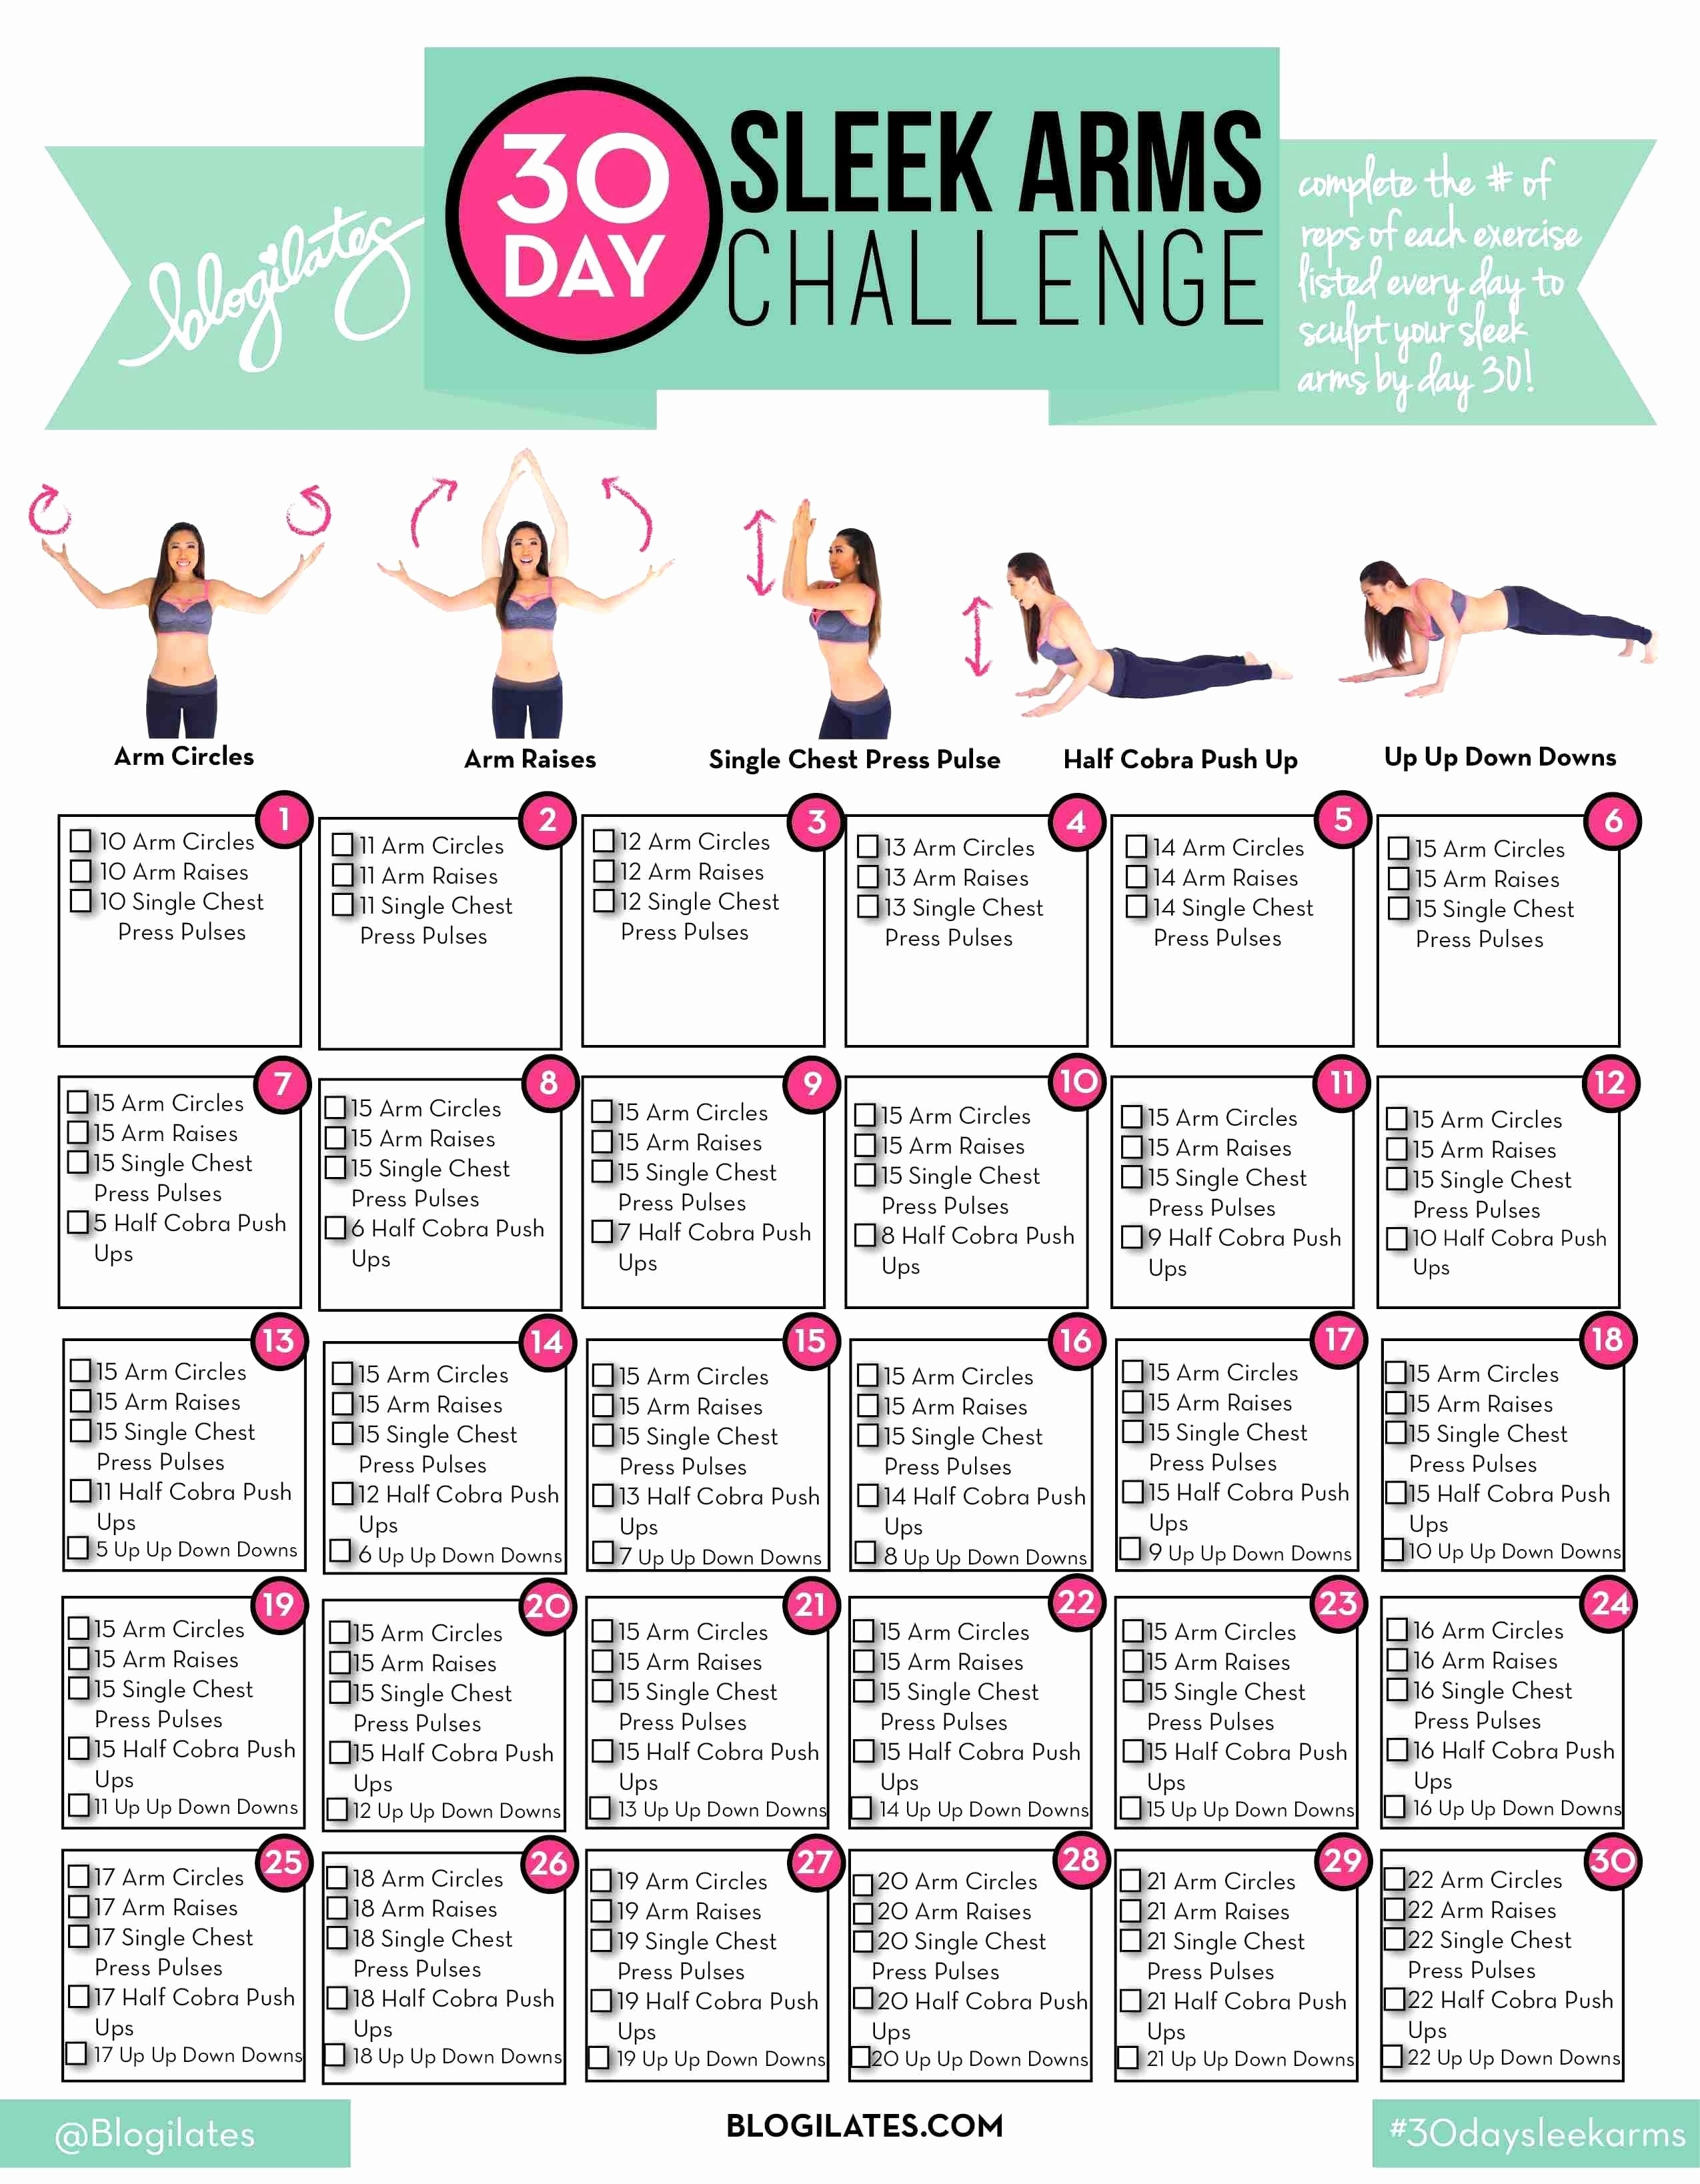 90 Day Home Workout Plan Awesome Printable Workout Plans - Free Printable Workout Plans